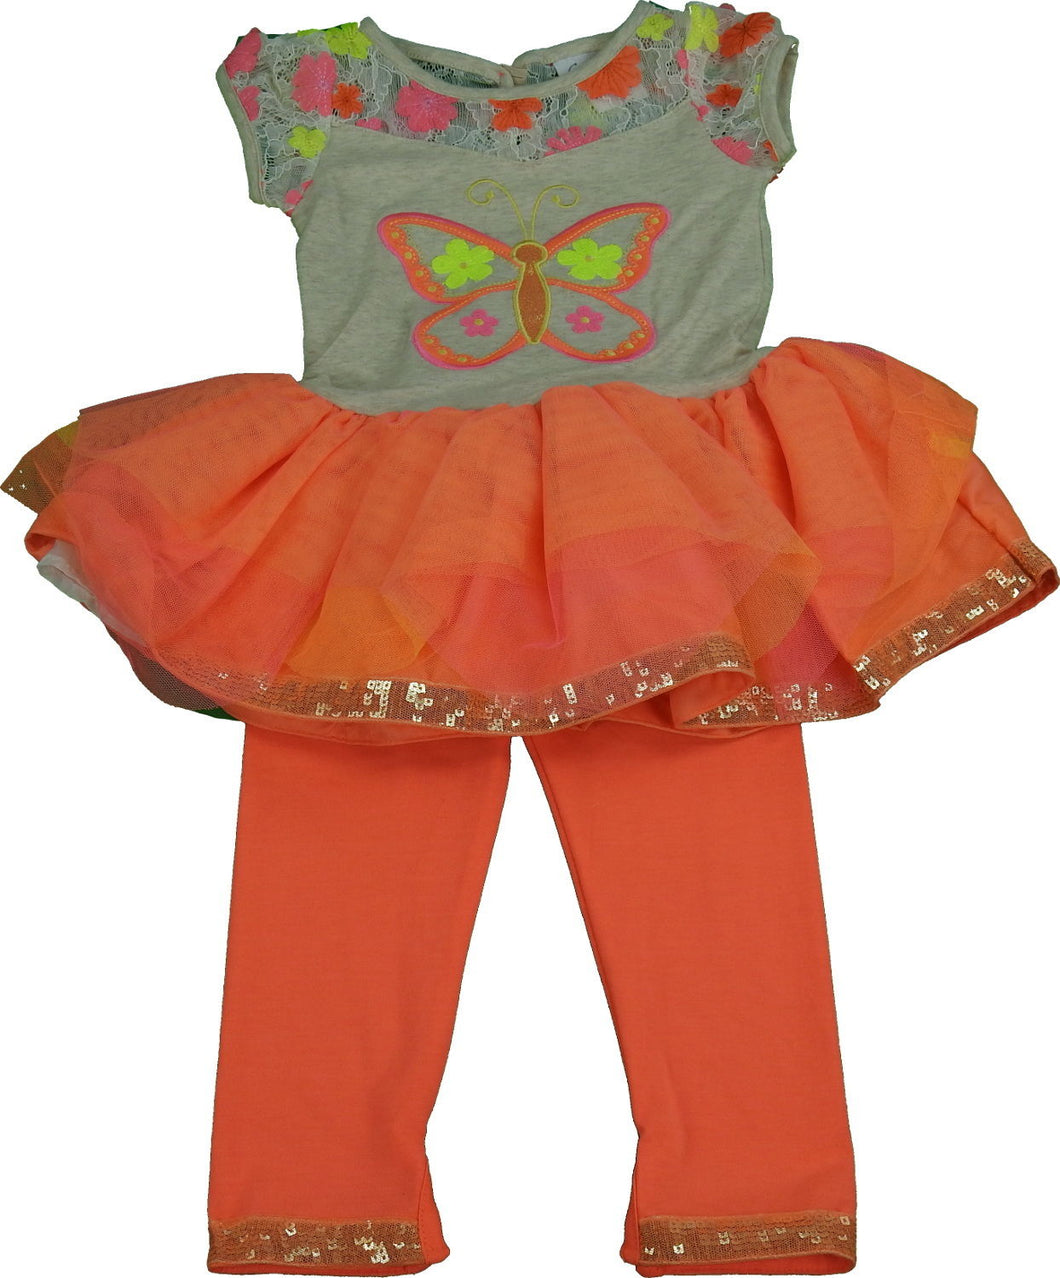 Emily Rose Girls Tutu Dress Top & Legging 2-Piece Set, Oatmeal Butterfly